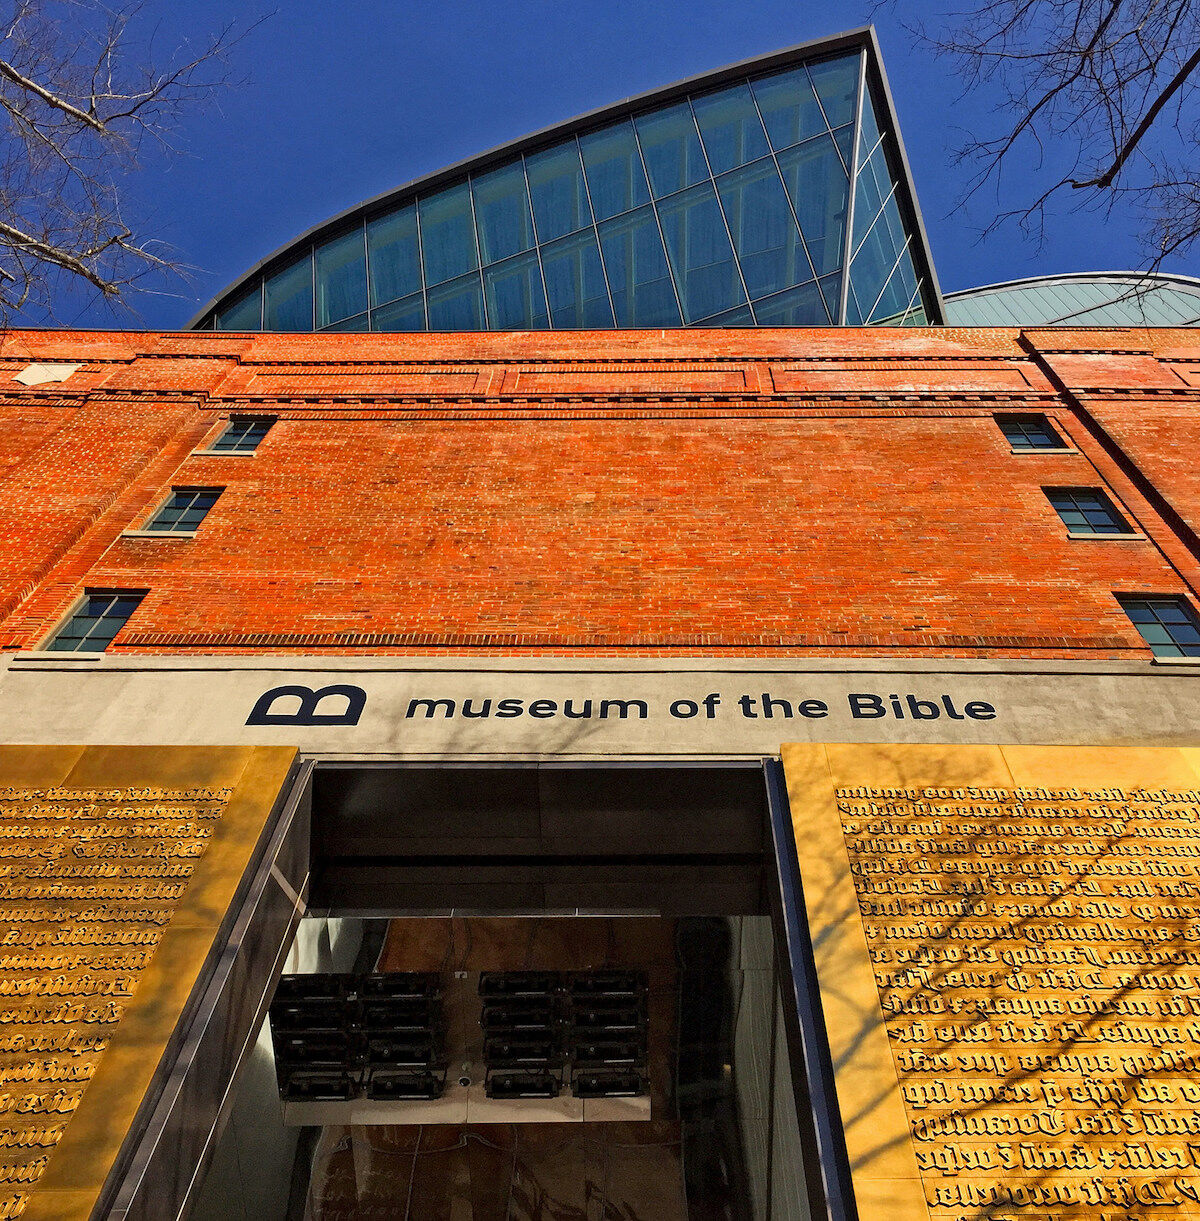 The Museum of the Bible in Washington, D.C. Photo by Ron Cogswell, via